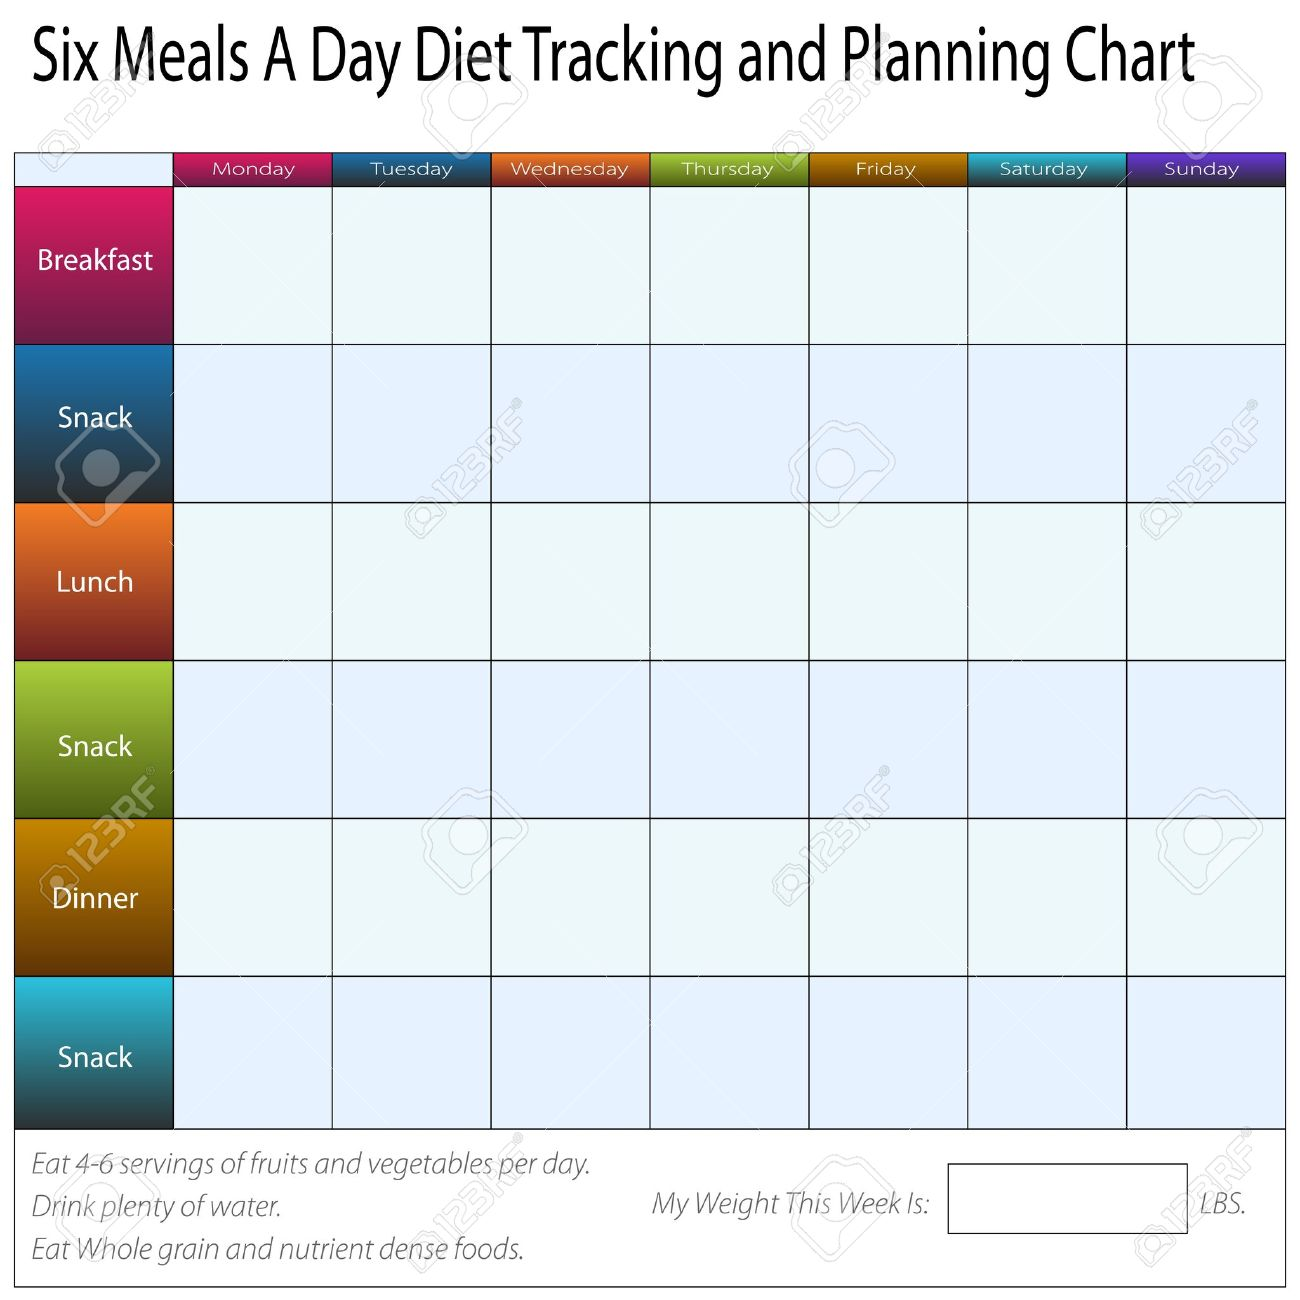 an image of a six meals a weekly day diet tracking and planning